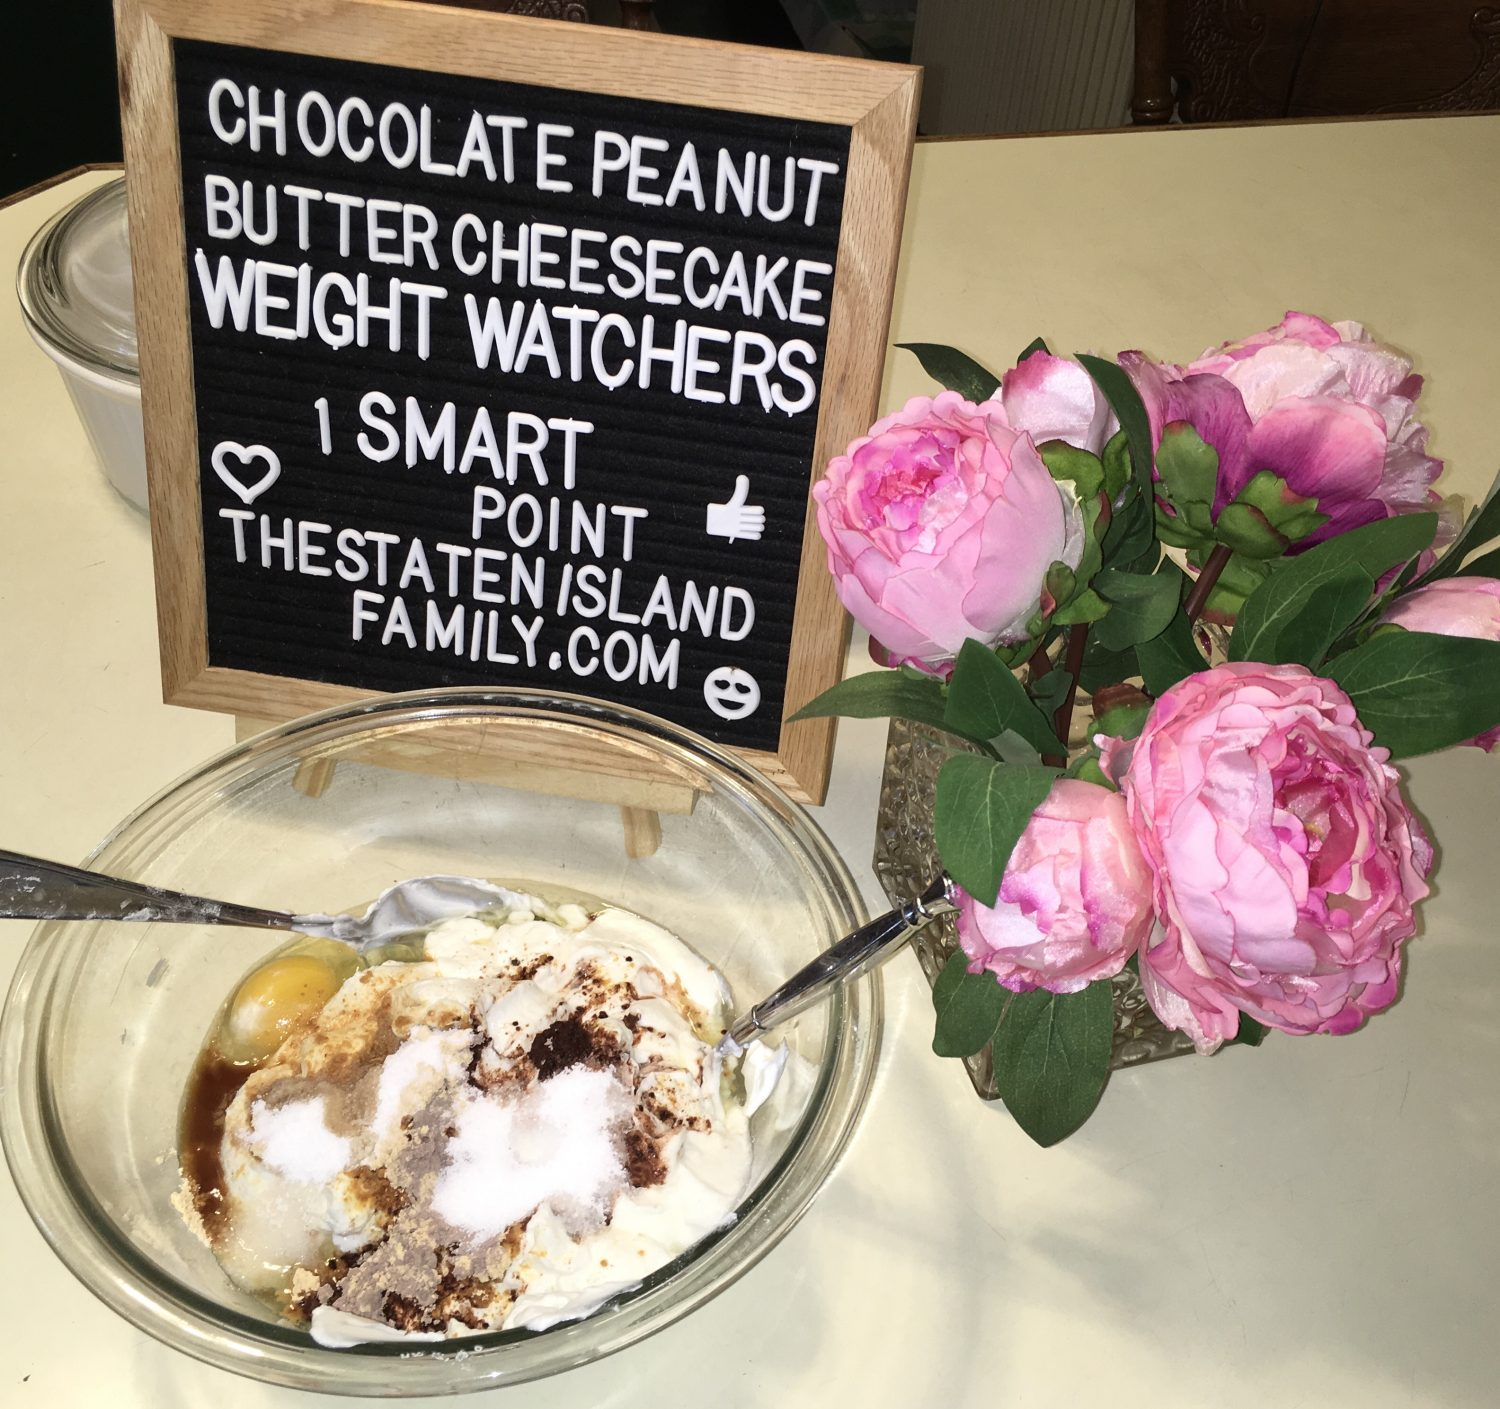 Weight Watchers Chocolate Peanut Butter Cheesecake Recipe One Smart Point Per Serving